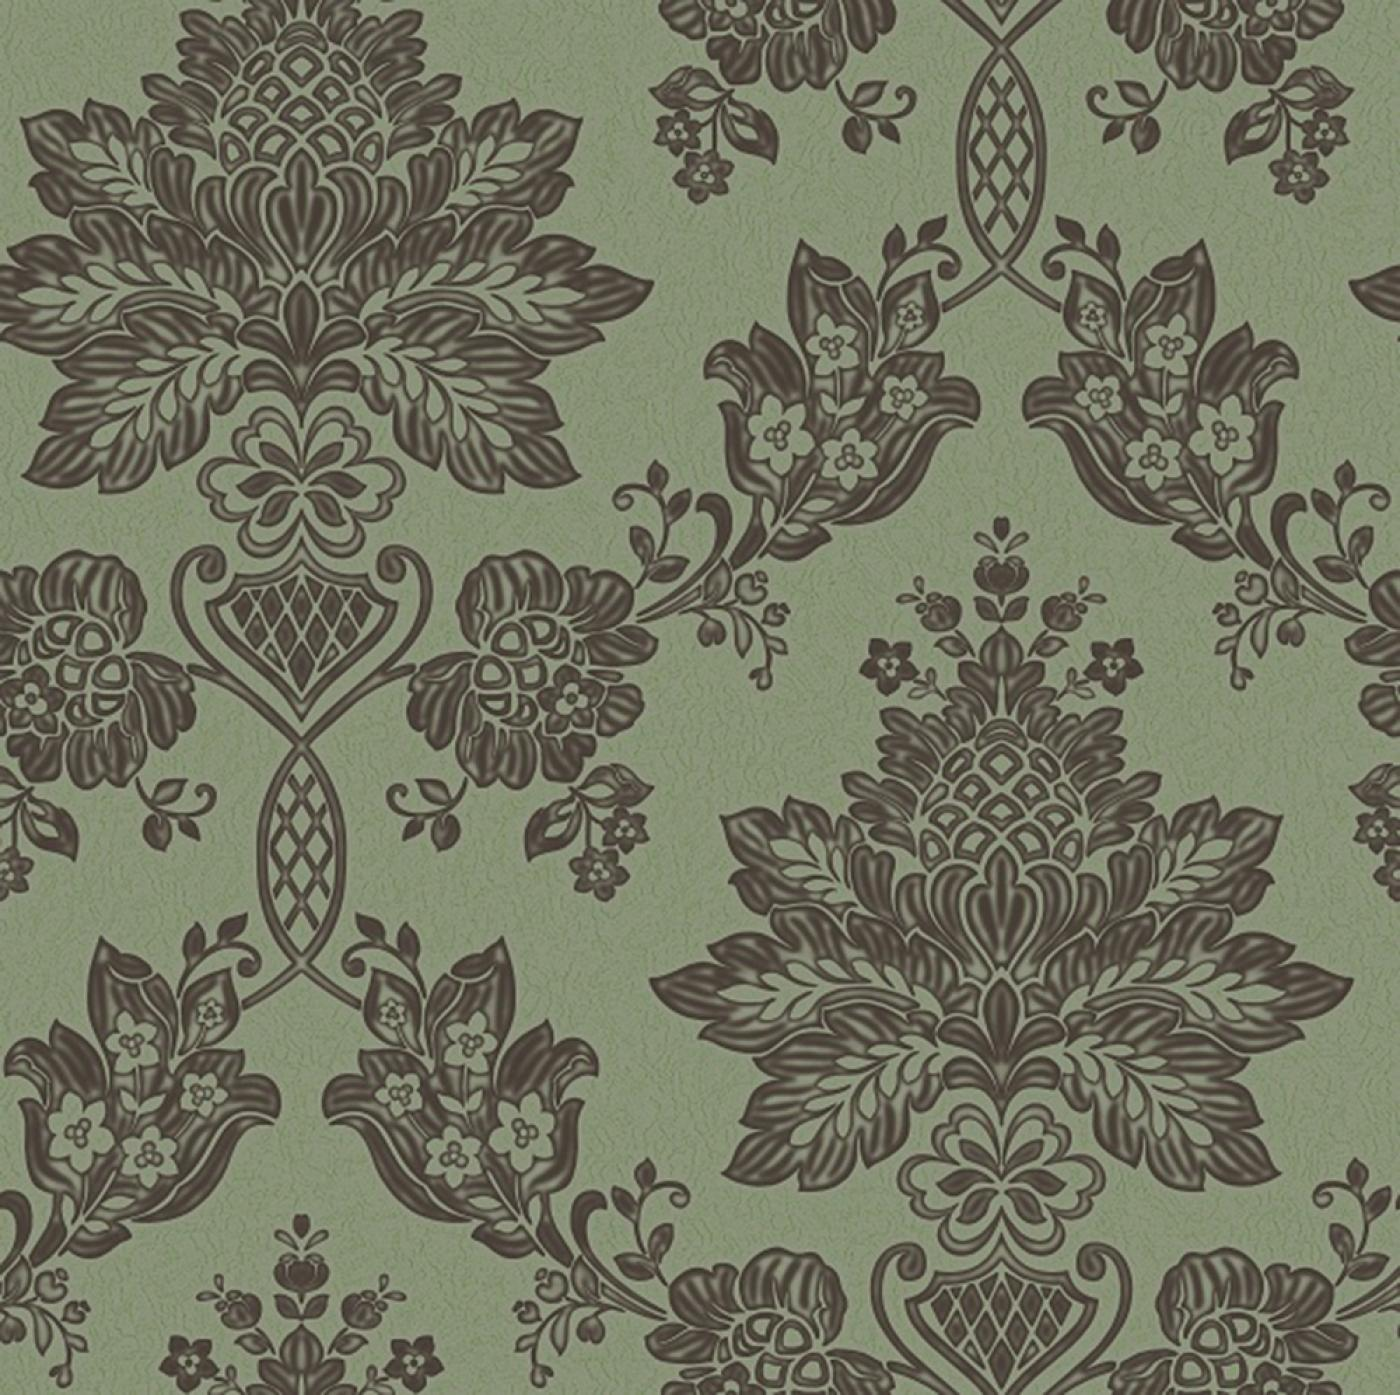 Luxus Vinyltapete - Luxury Vinyl Wallpaper 759693, Premium